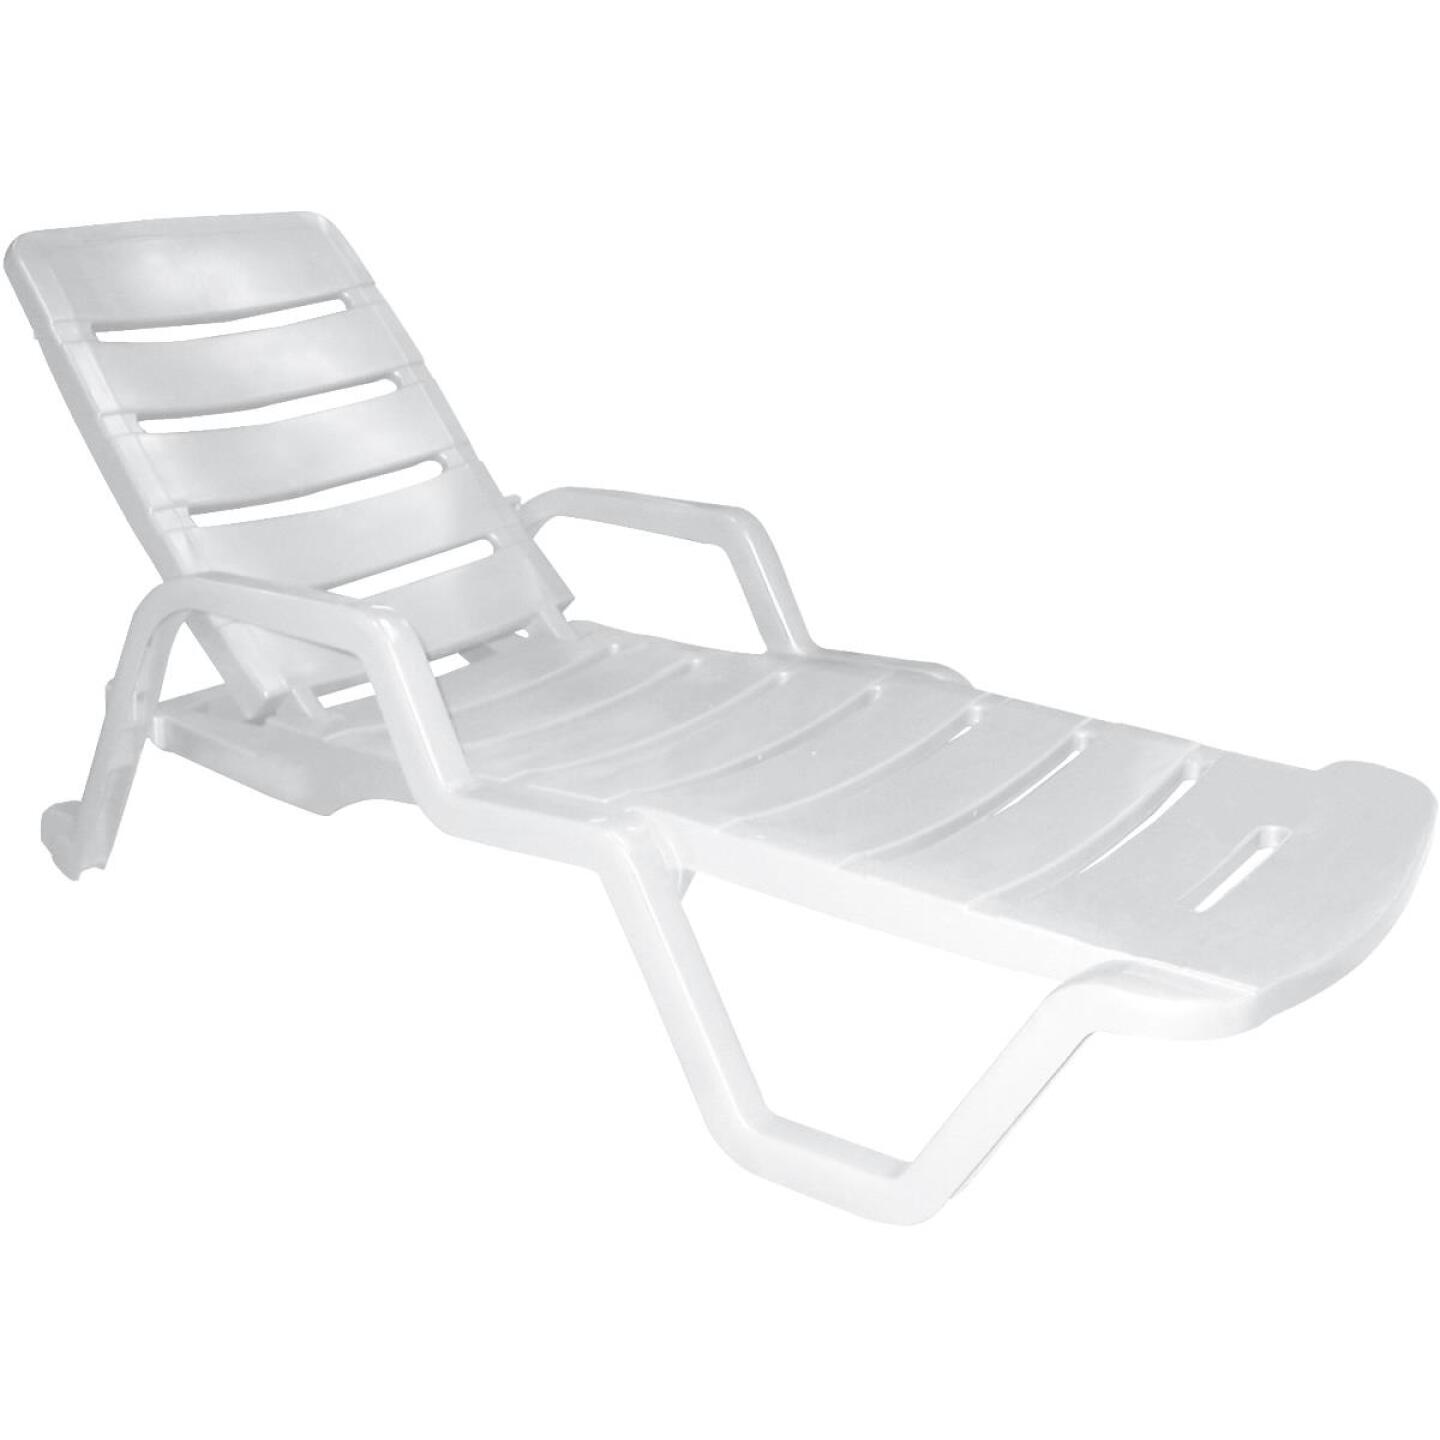 Adams White Resin Adjustable Chaise Lounge Image 1